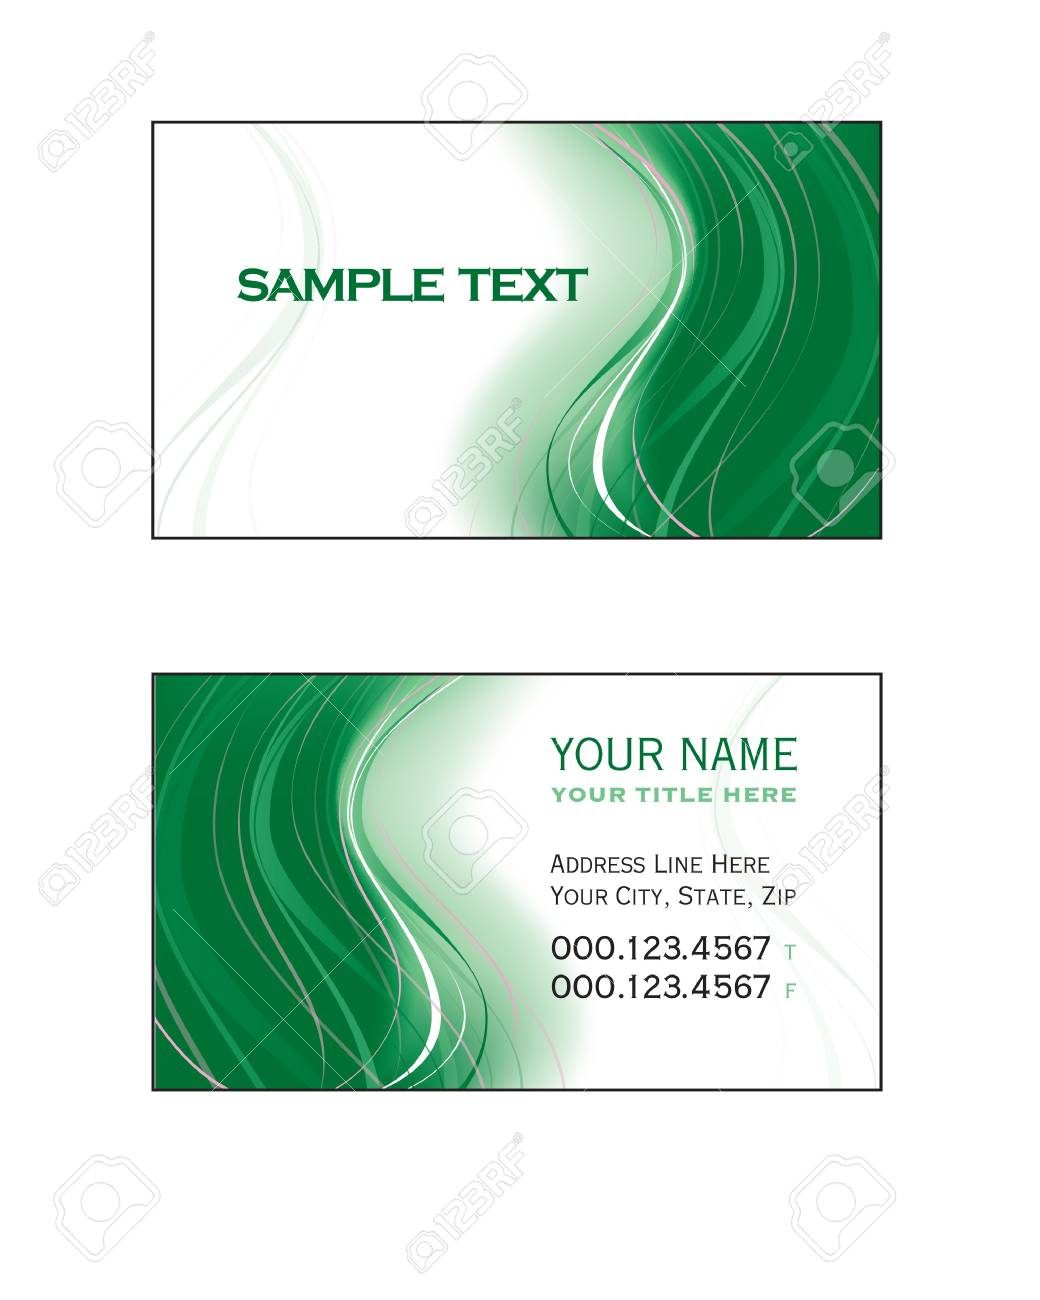 Business Card Template Stock Vector - 17324983